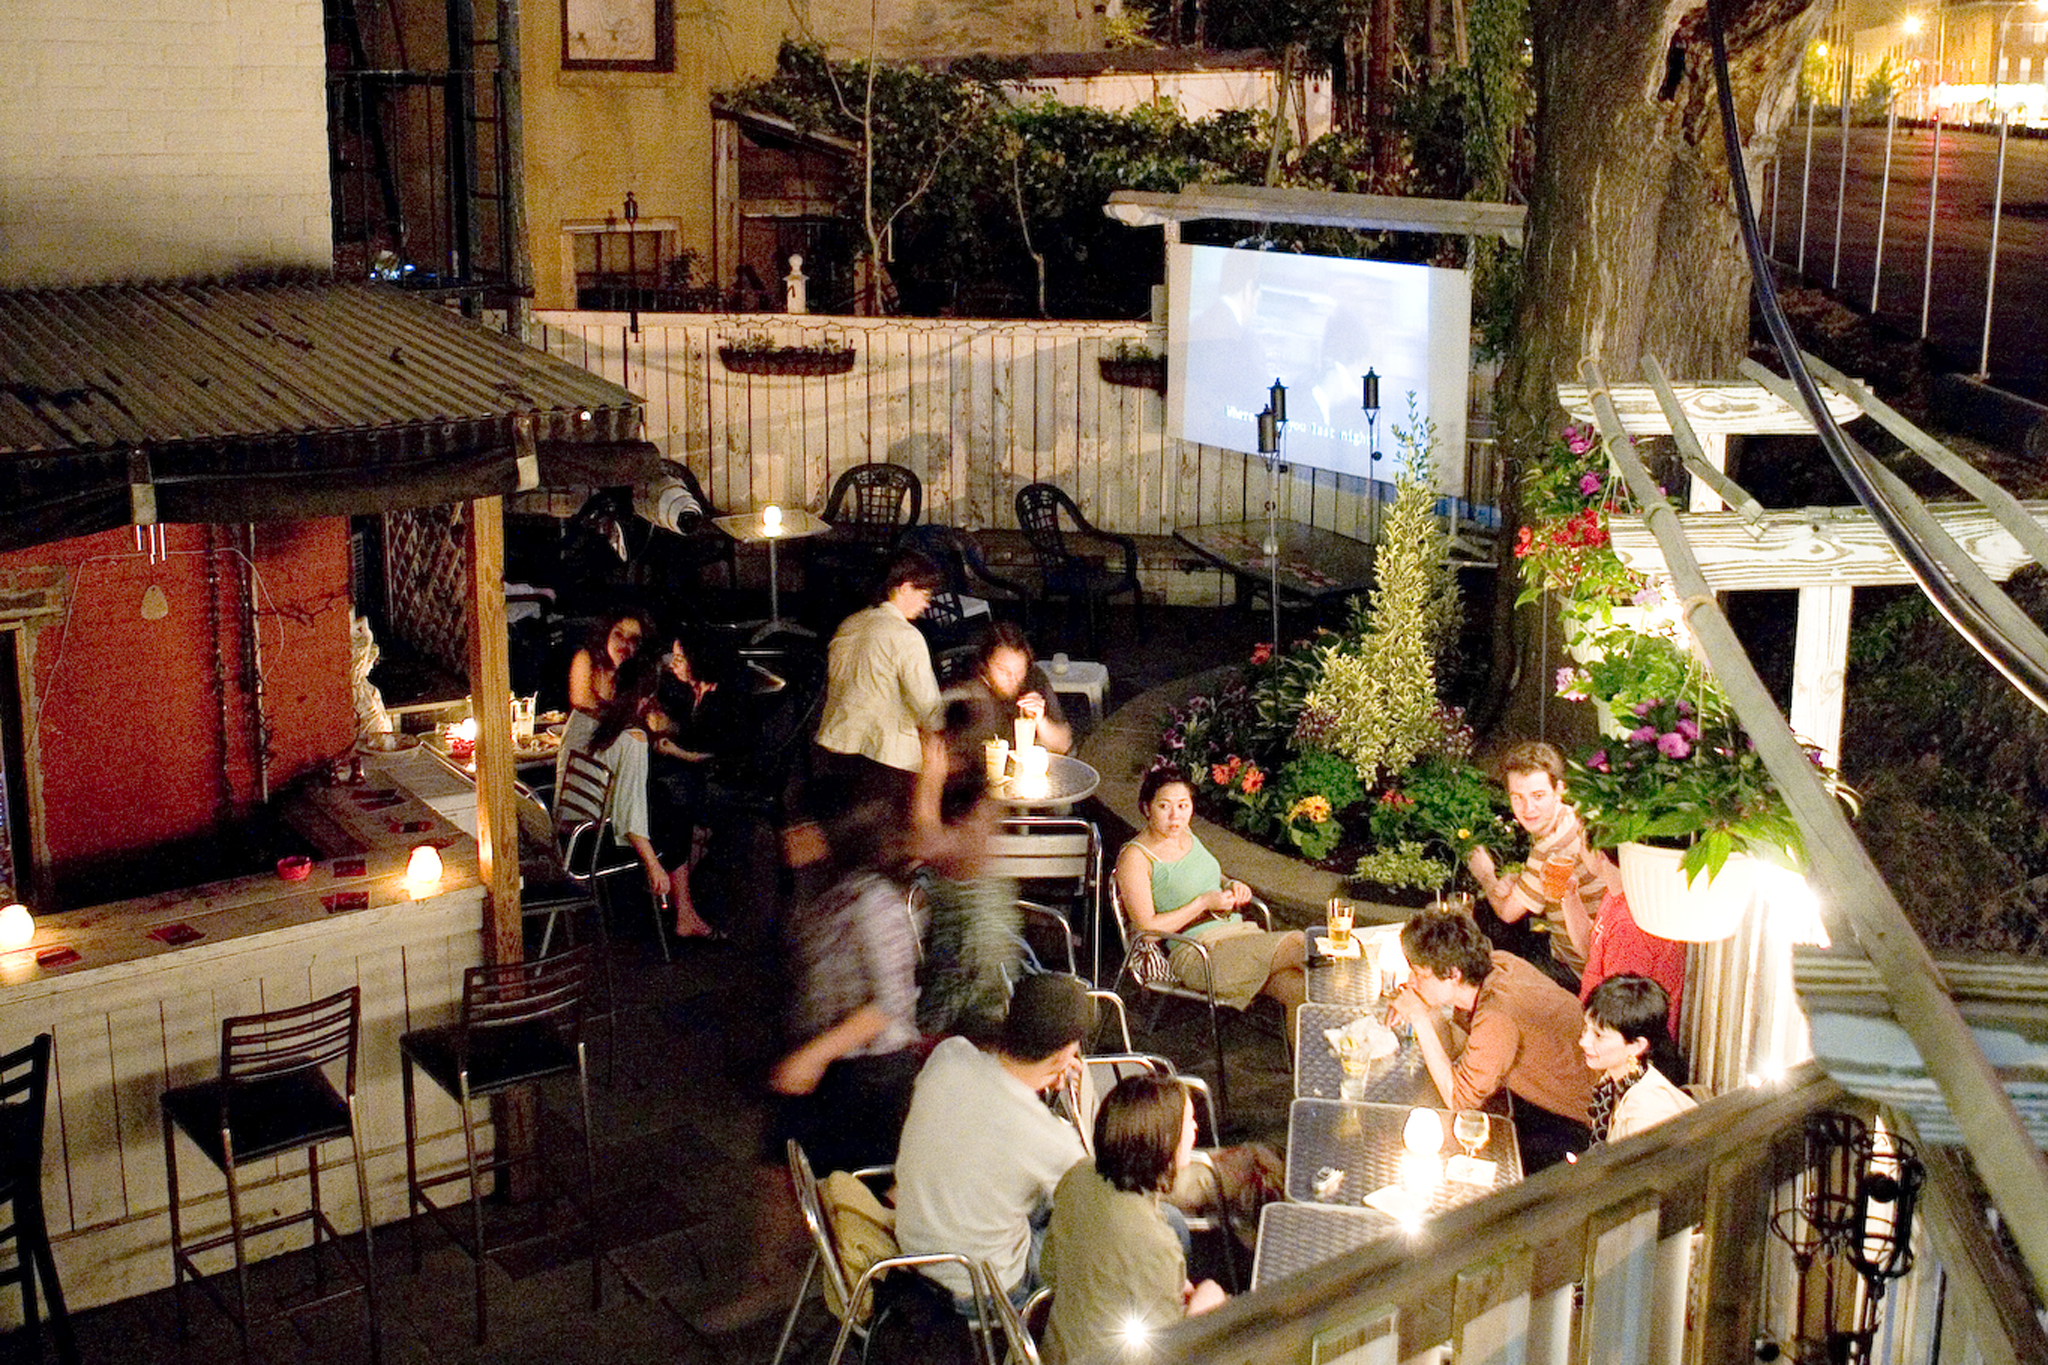 Bars with outdoor activities and games